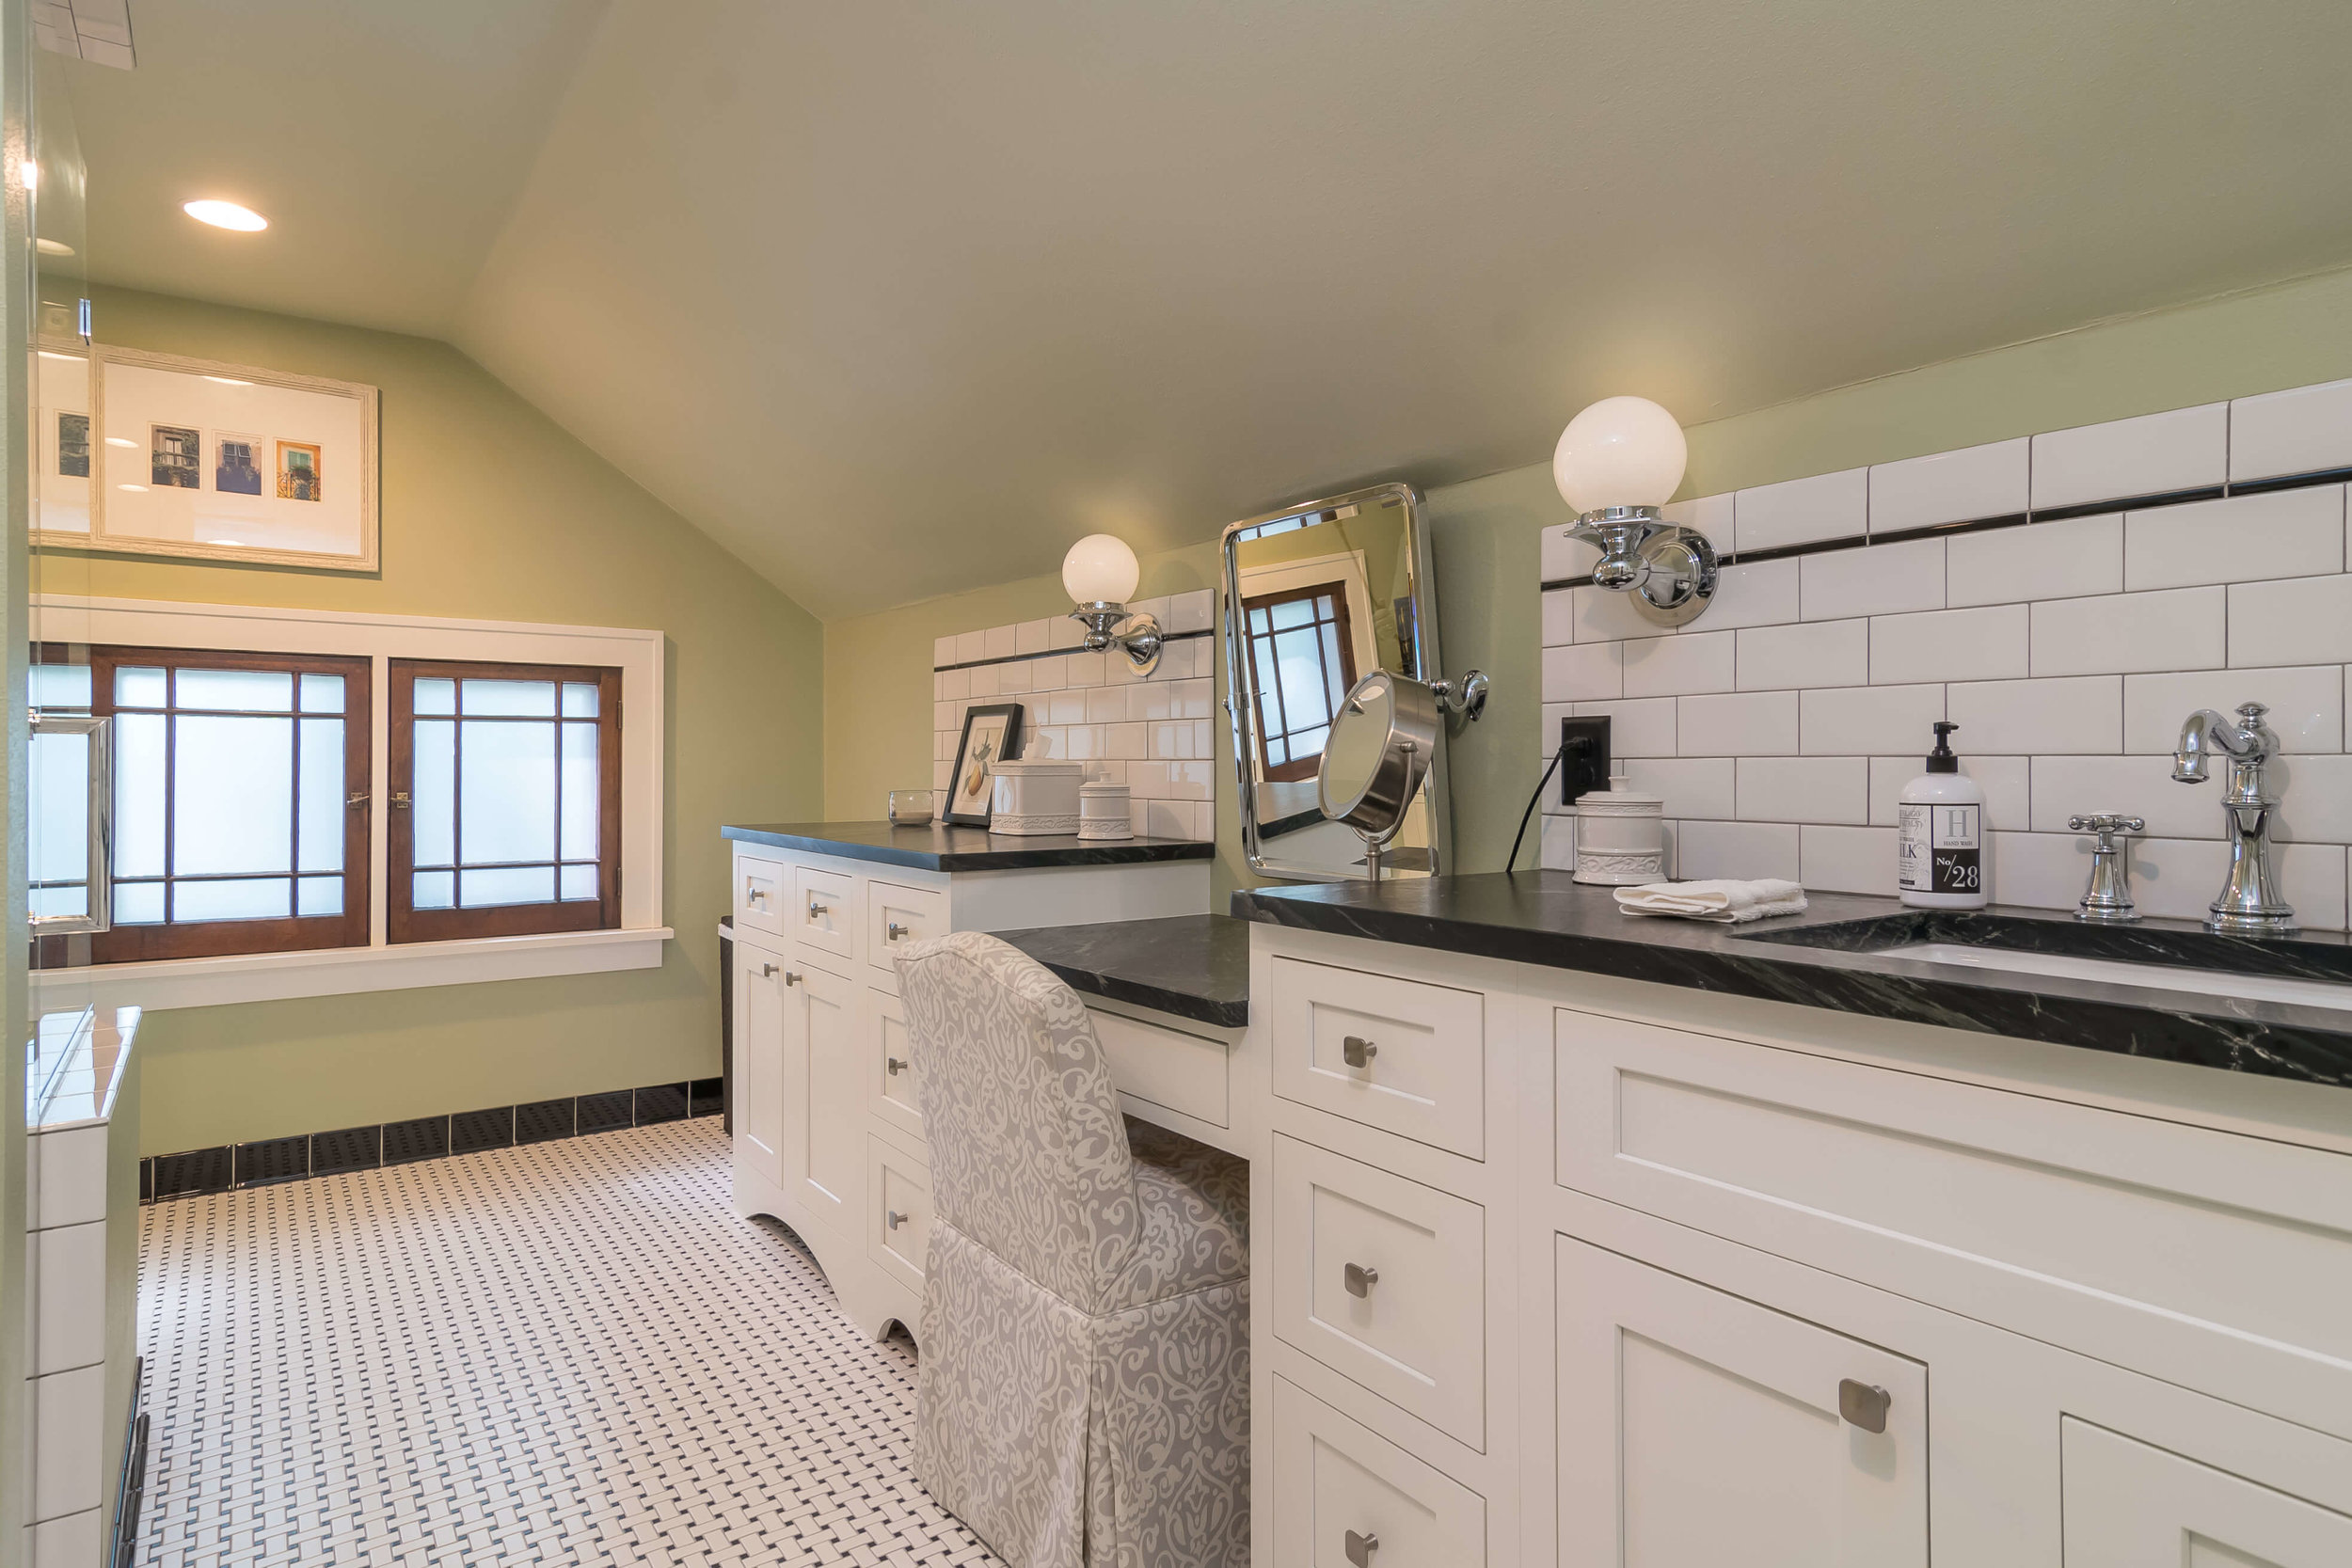 bathroom-master-suite-bedroom-remodel-Madison-Wisconsin-4.jpg